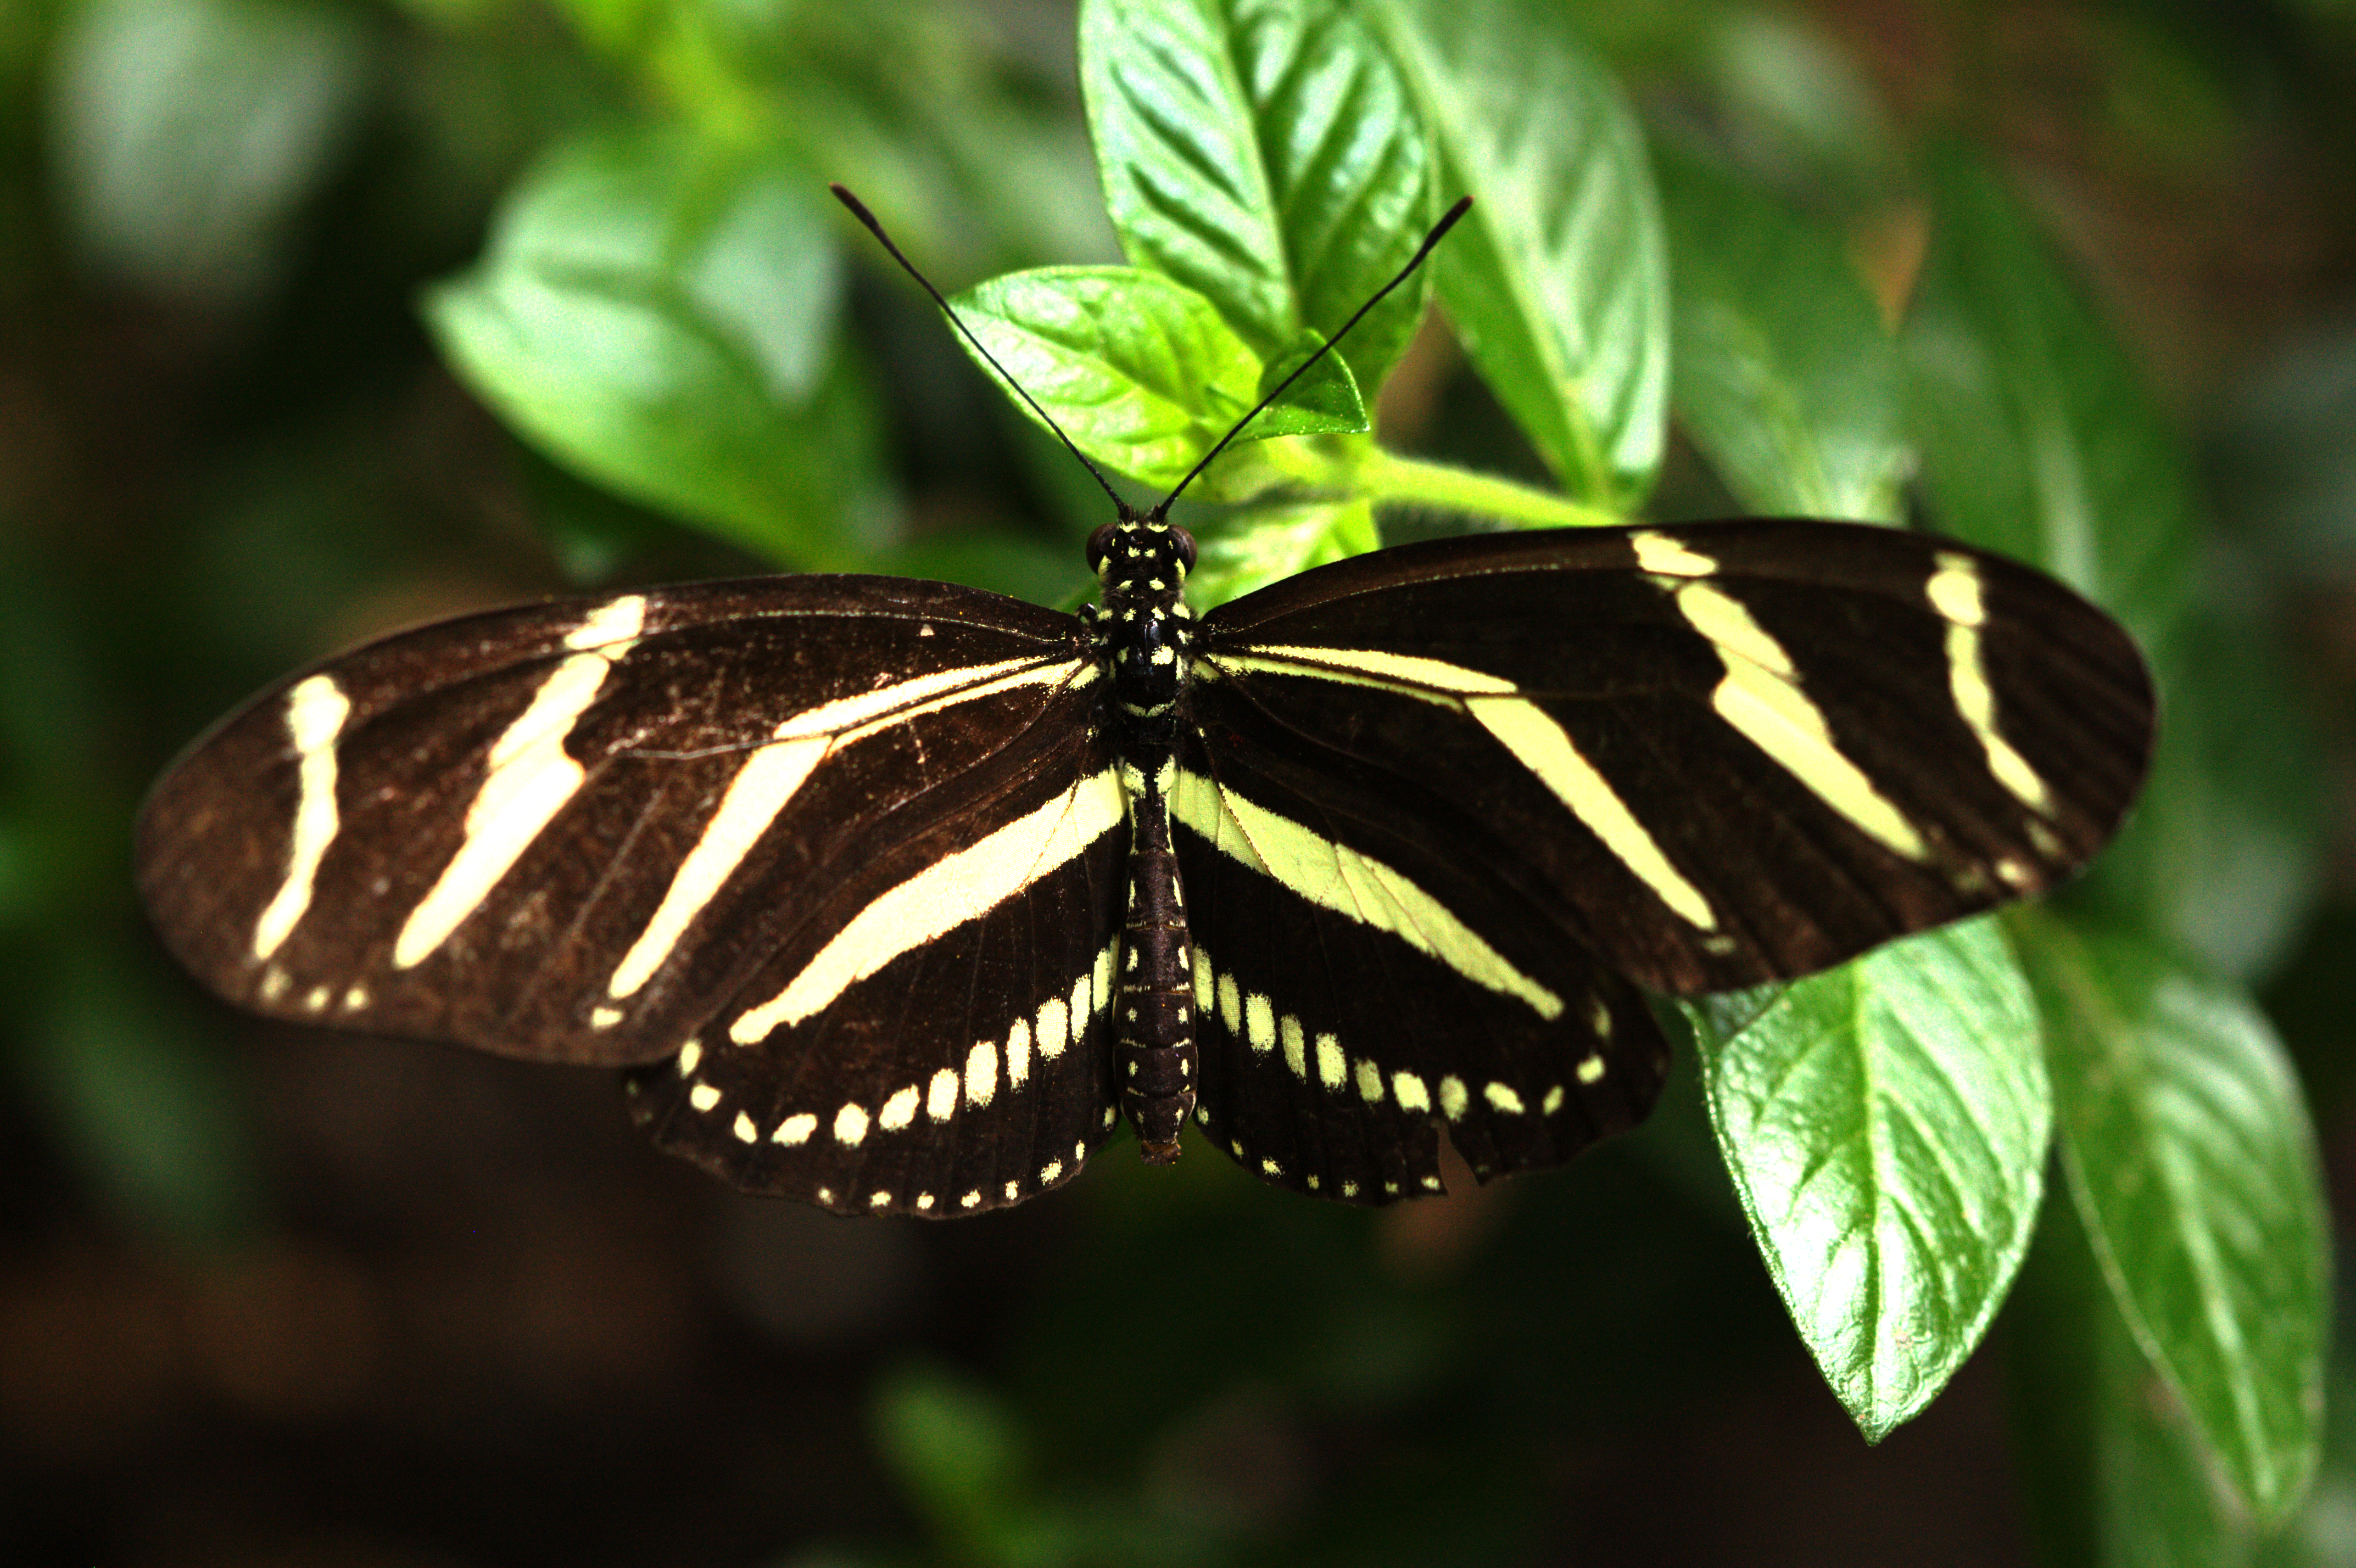 Zebra_Longwing_(Heliconius_charithonia) butterfly by Rmrfstar CC BY-SA 3.0